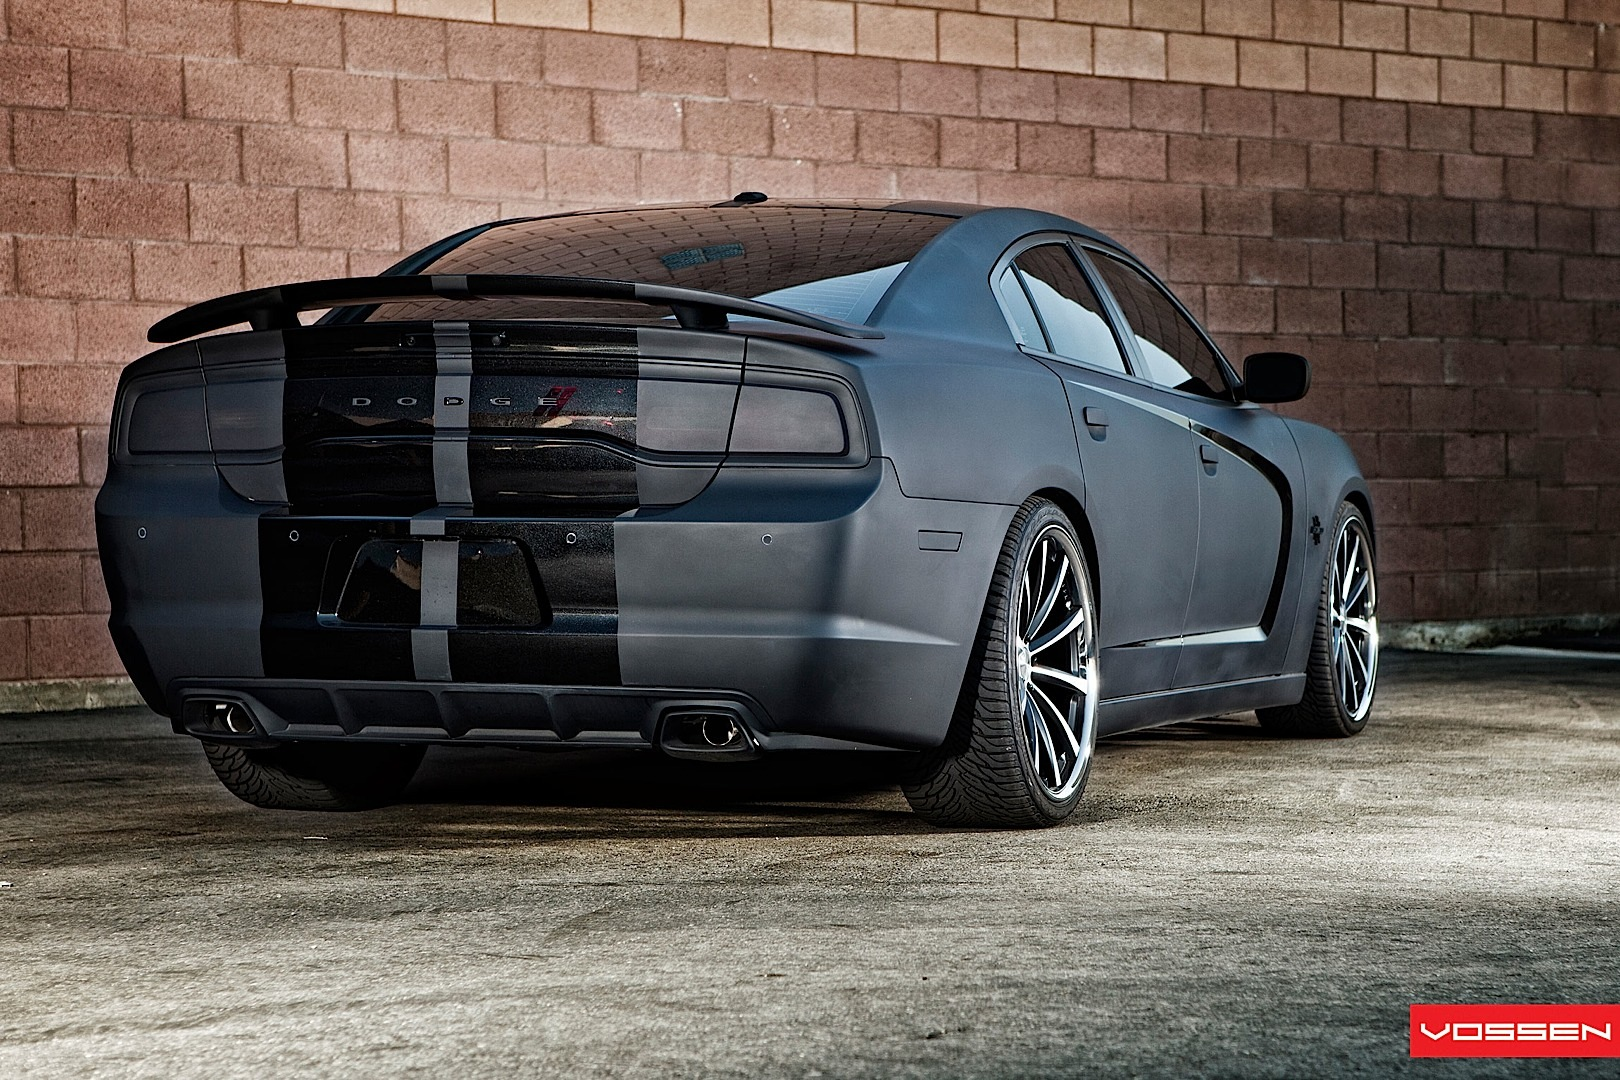 The dodge charger and we are talking about the modern incarnation of the muscle car here is the kind of vehicle that perfectly suits the wrap an